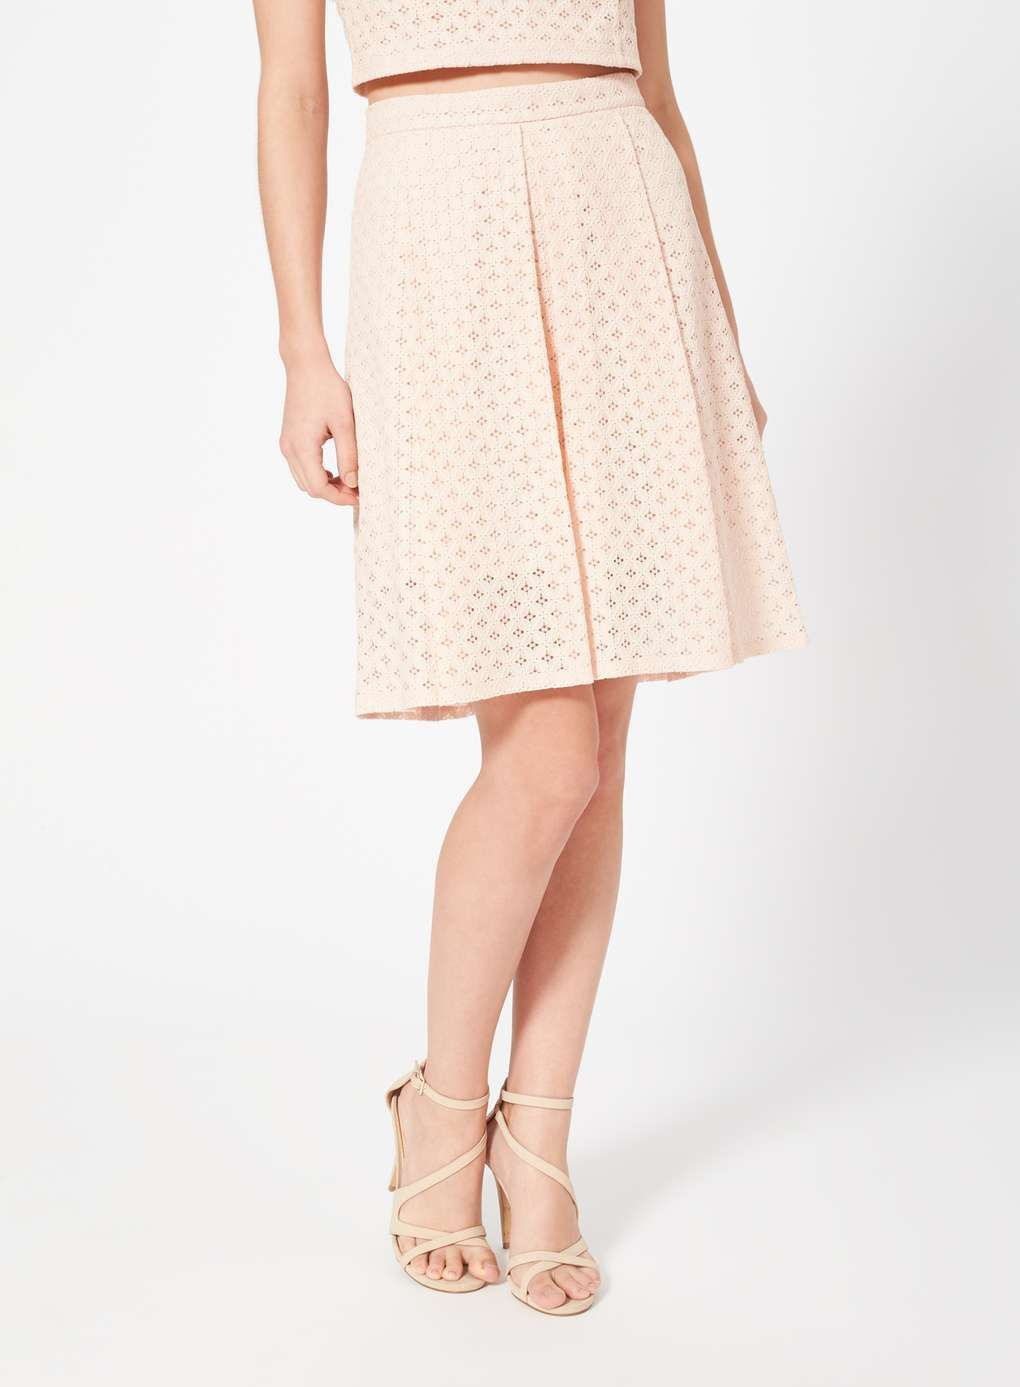 a10826d59a Petites Blush Lace Midi Skirt - Skirts - Clothing - Miss Selfridge